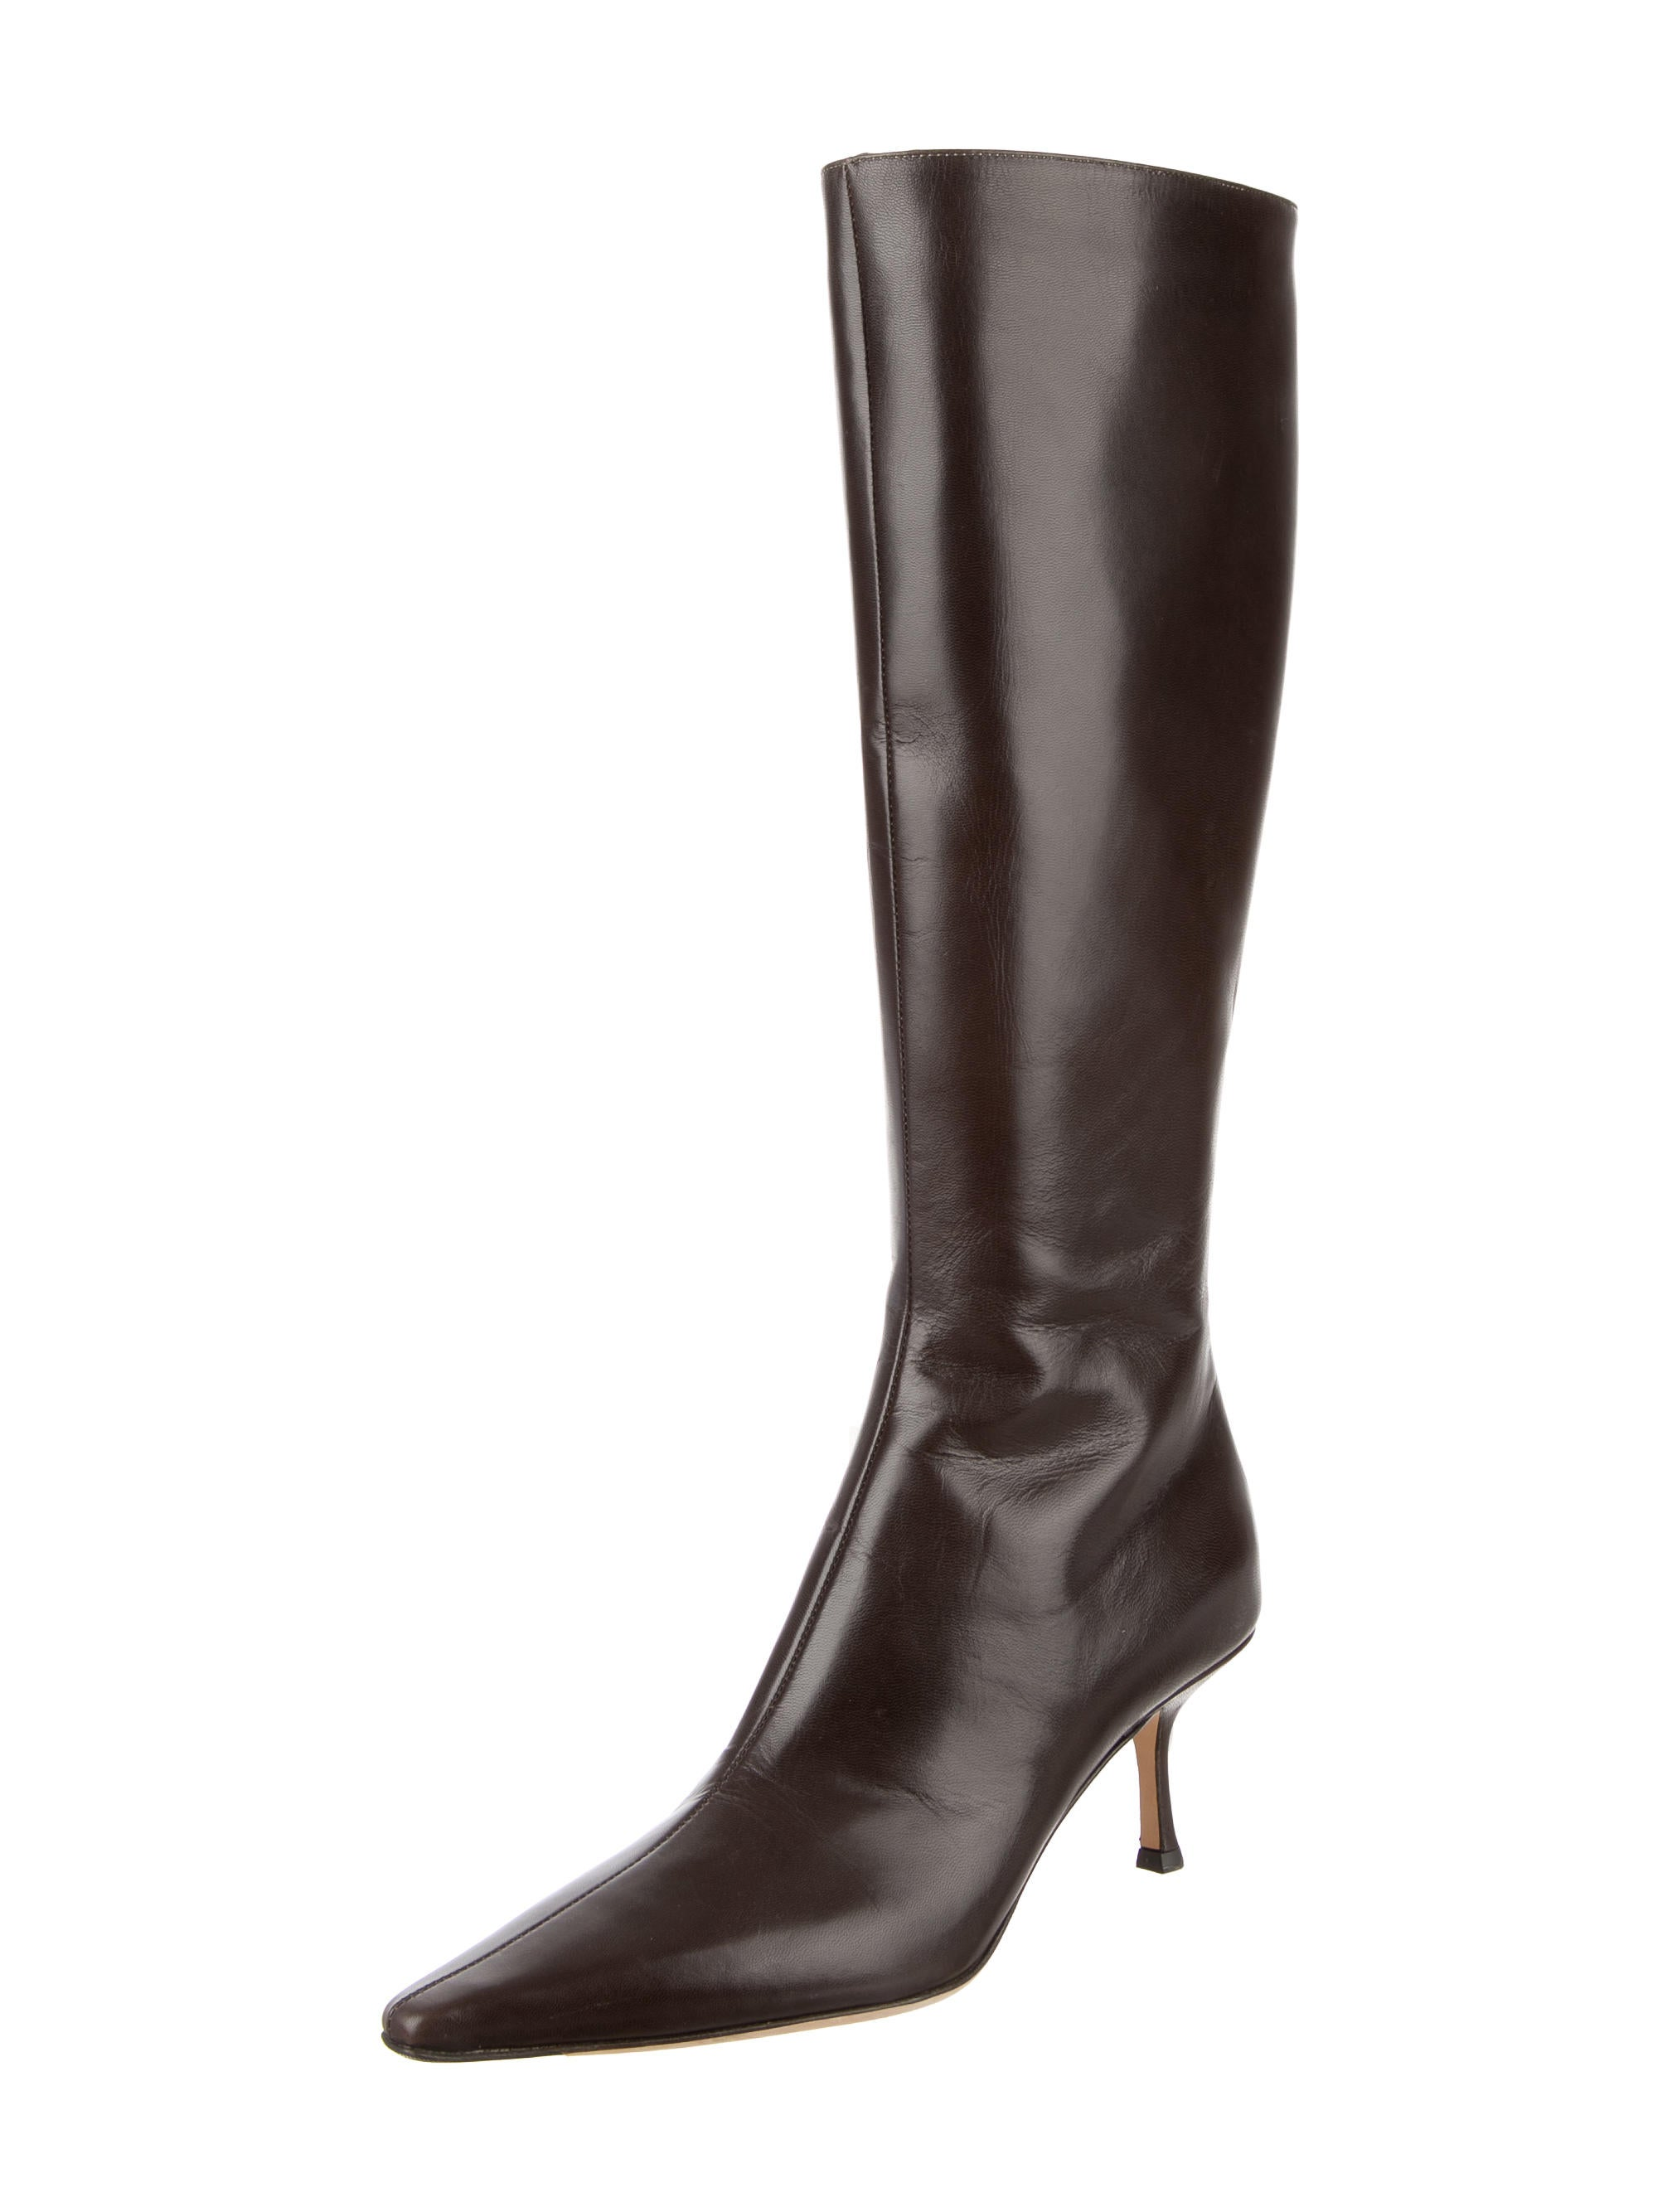 jimmy choo pointed toe knee high boots shoes jim60546